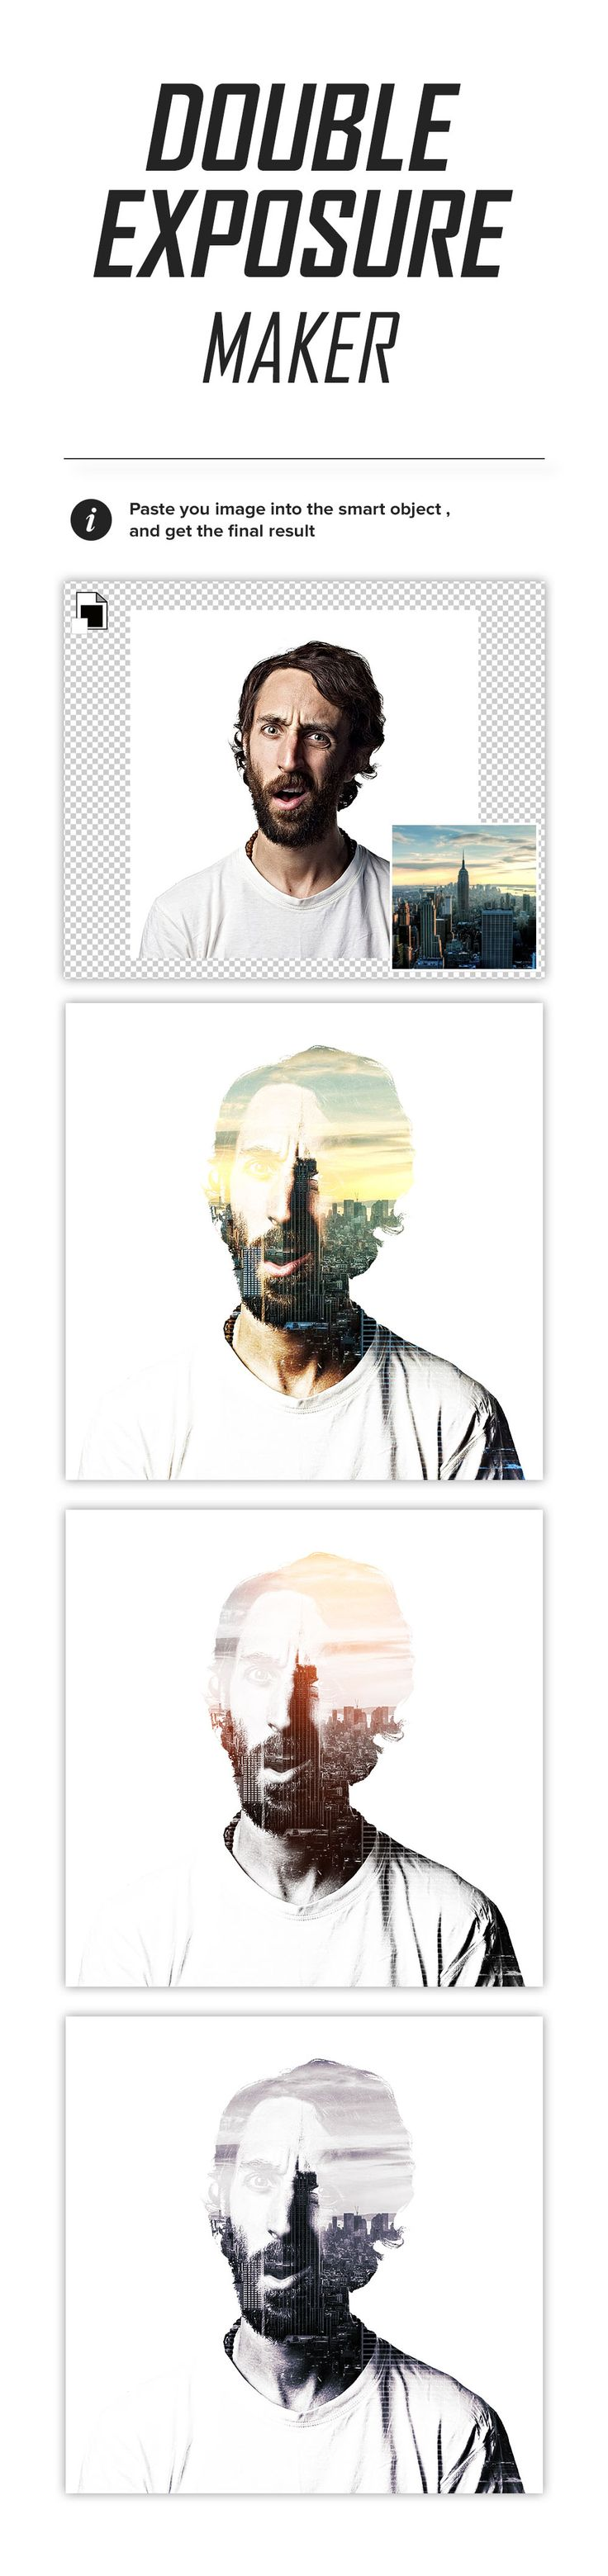 Cool & free Photoshop template with effect for your photos or texts from PixelMustache. Get a cool double exposure effect for your photos in seconds. Download from Dealjumbo and enjoy ;) - adobe photoshop *.psd file - very easy to customize and edit in Adobe Photoshop - use for personal